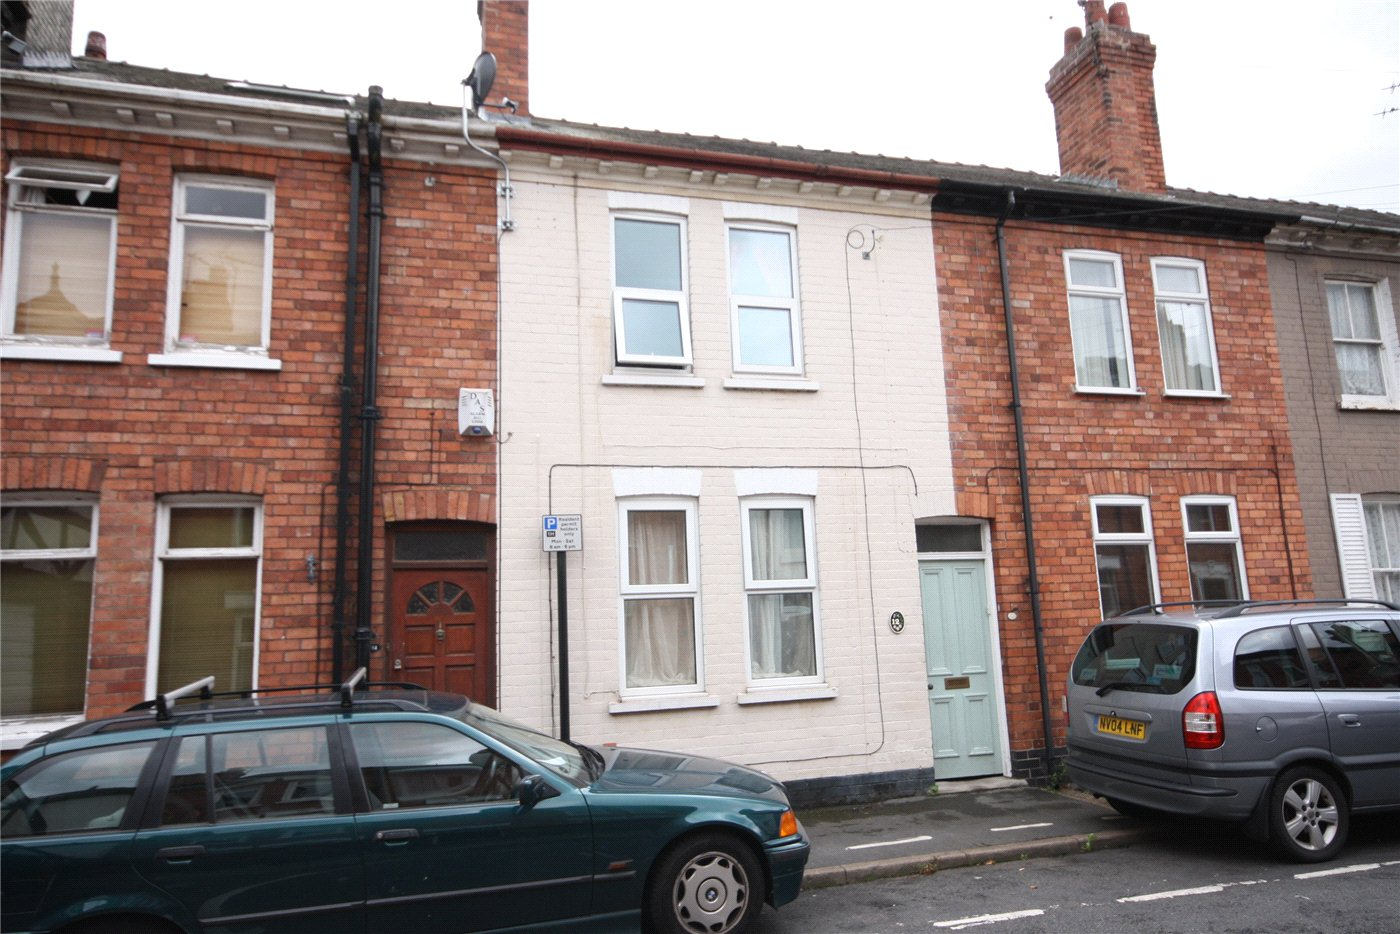 Three bedroom property in the west end of Lincoln